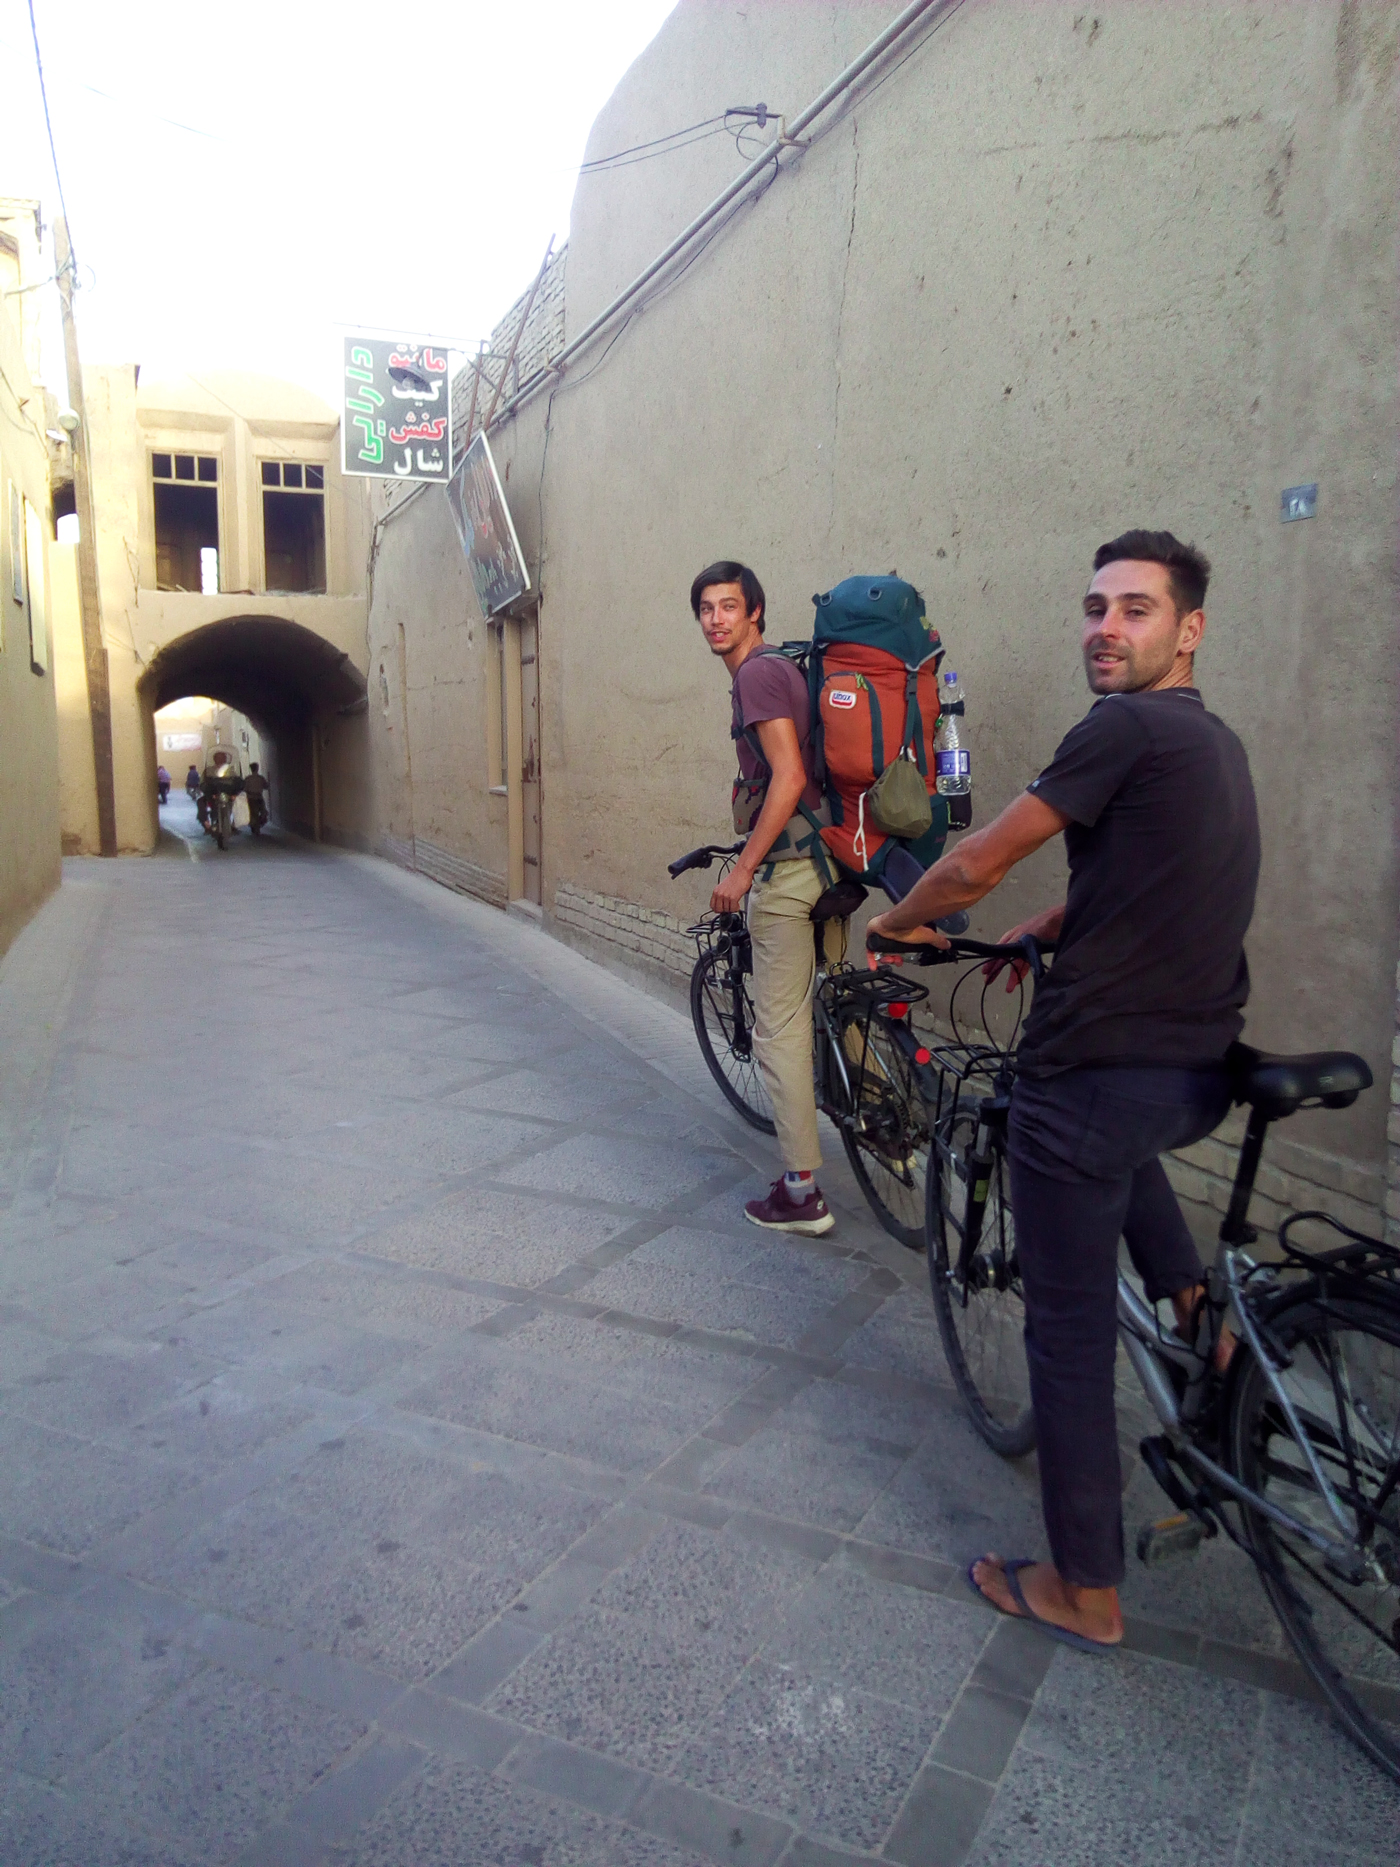 Bike trip, cross Iran Cycling, Arthur and Vincent biking in the streets of Yazd. Cycling travel, biketouring, cycling Iran, Arthur and Vincent cycling through the streets of Yazd.